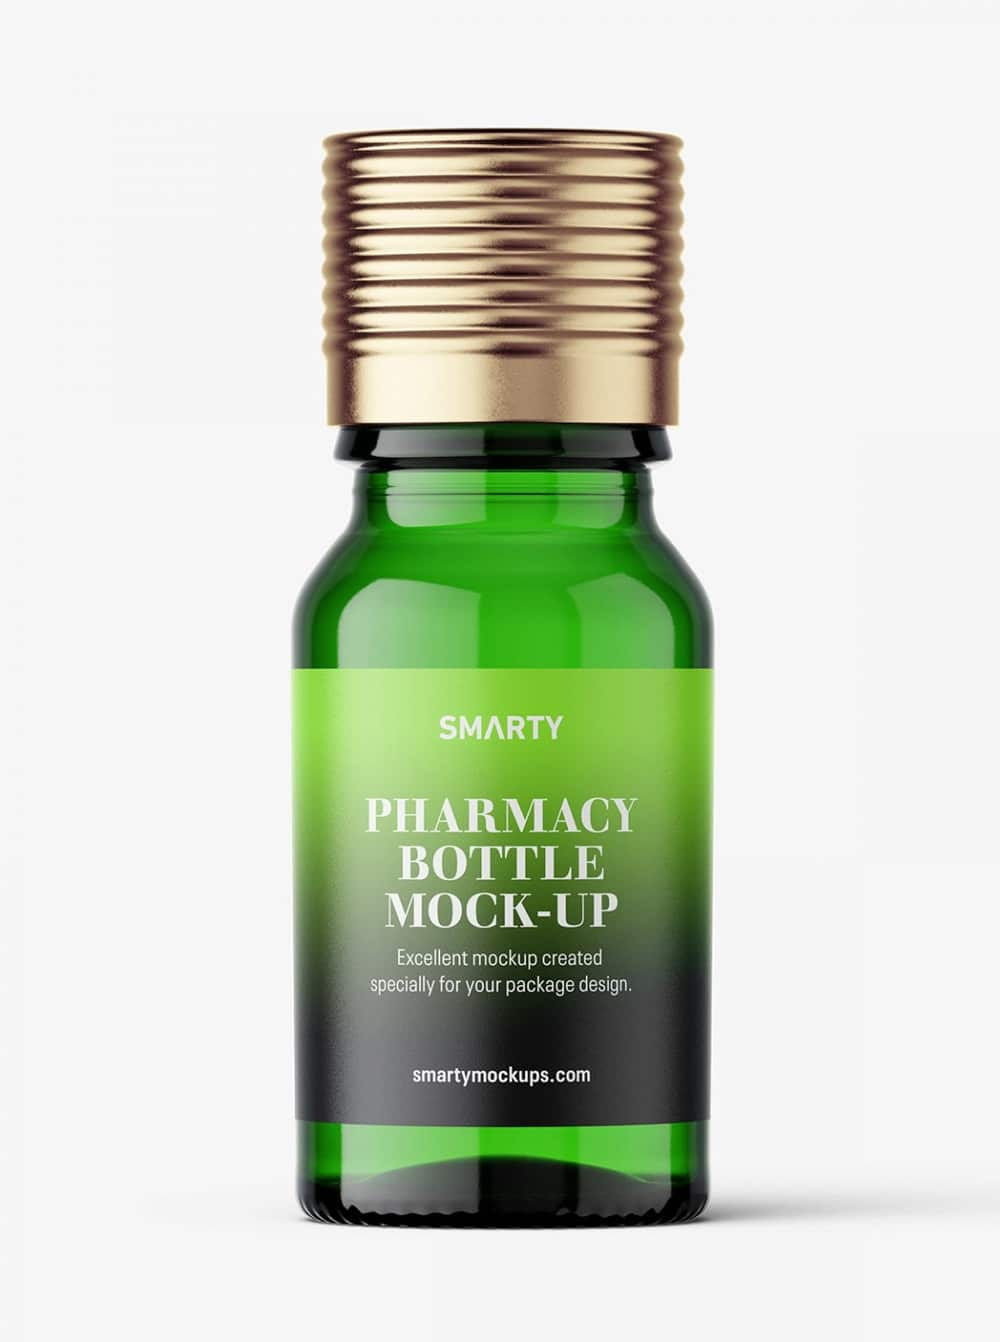 Green Pharmaceutical Bottle With Silver Cap